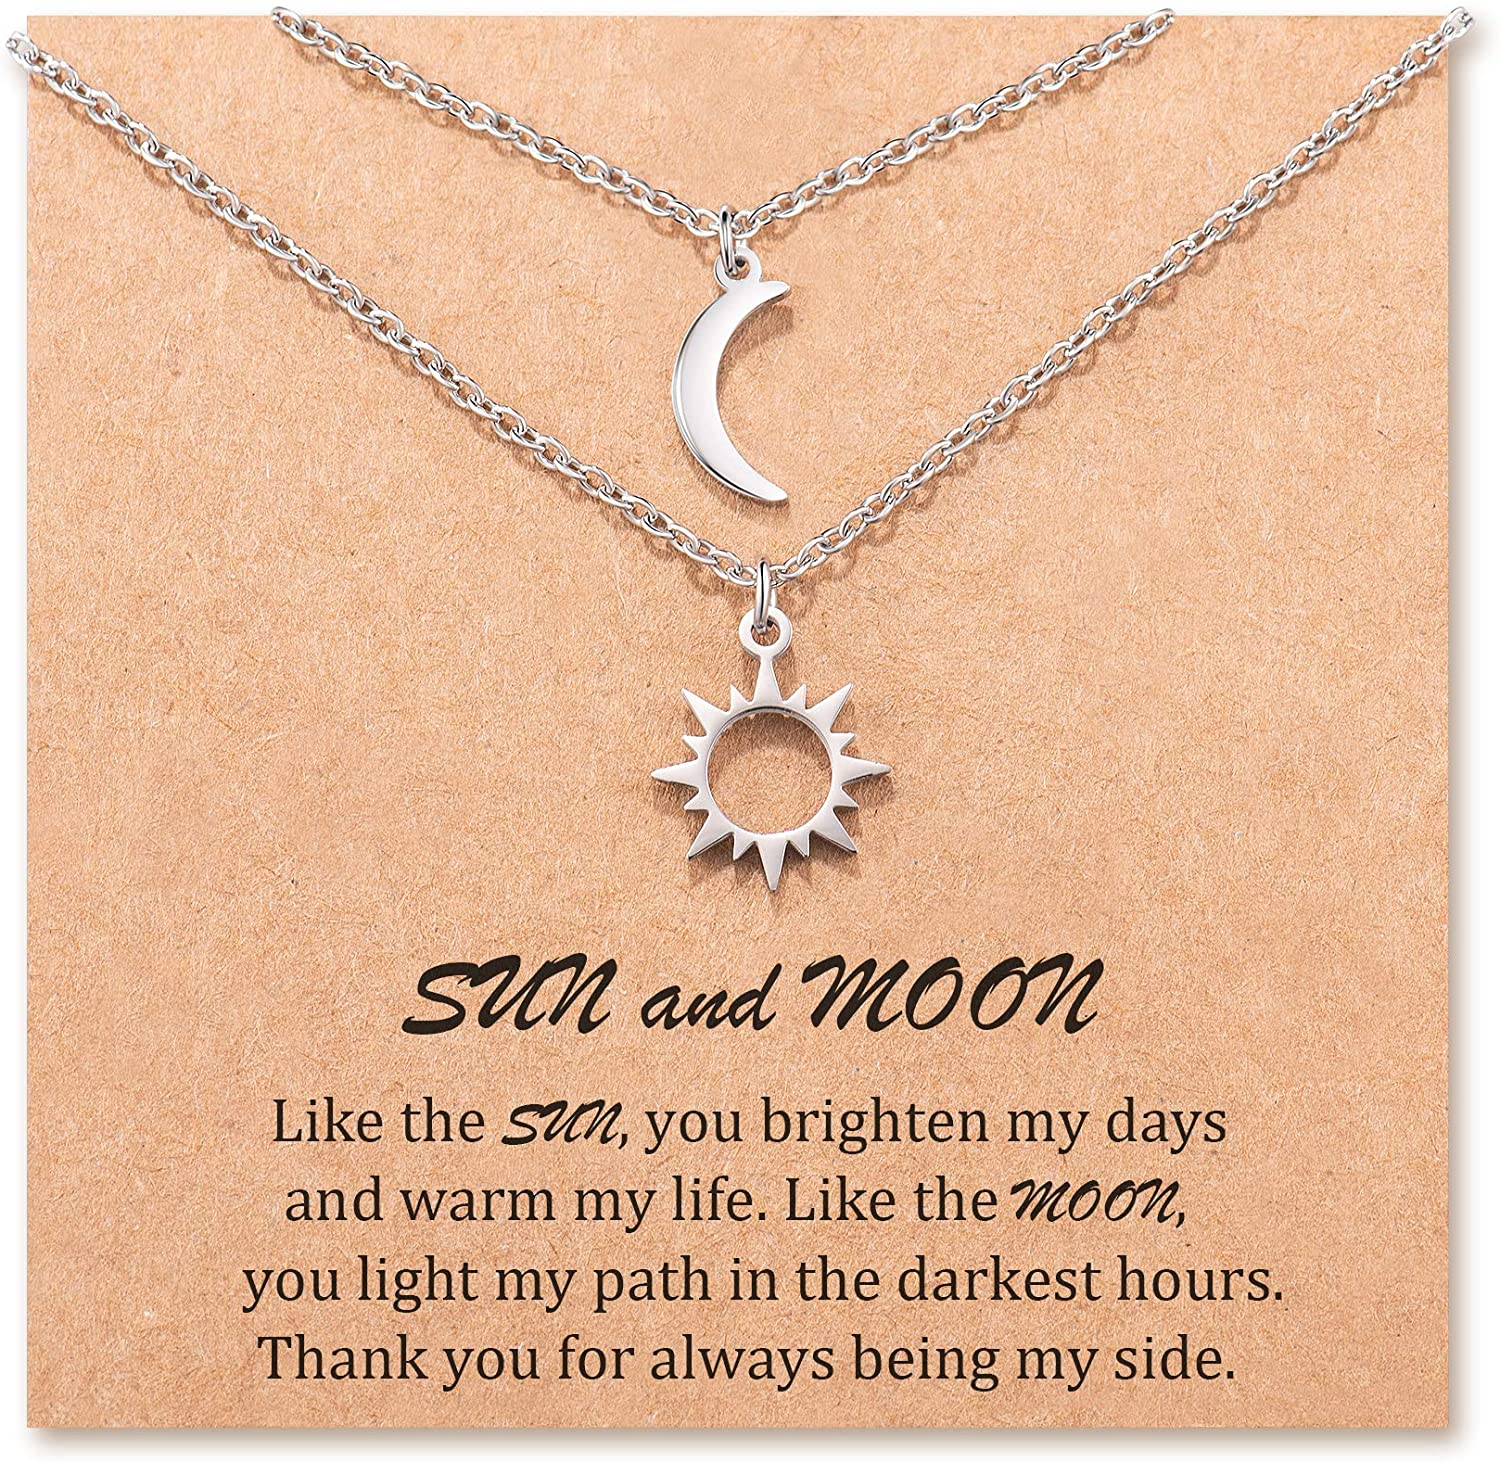 MANVEN Sun and Moon Best Friend Friendship Max 76% OFF for Latest item Necklace Pedant 2